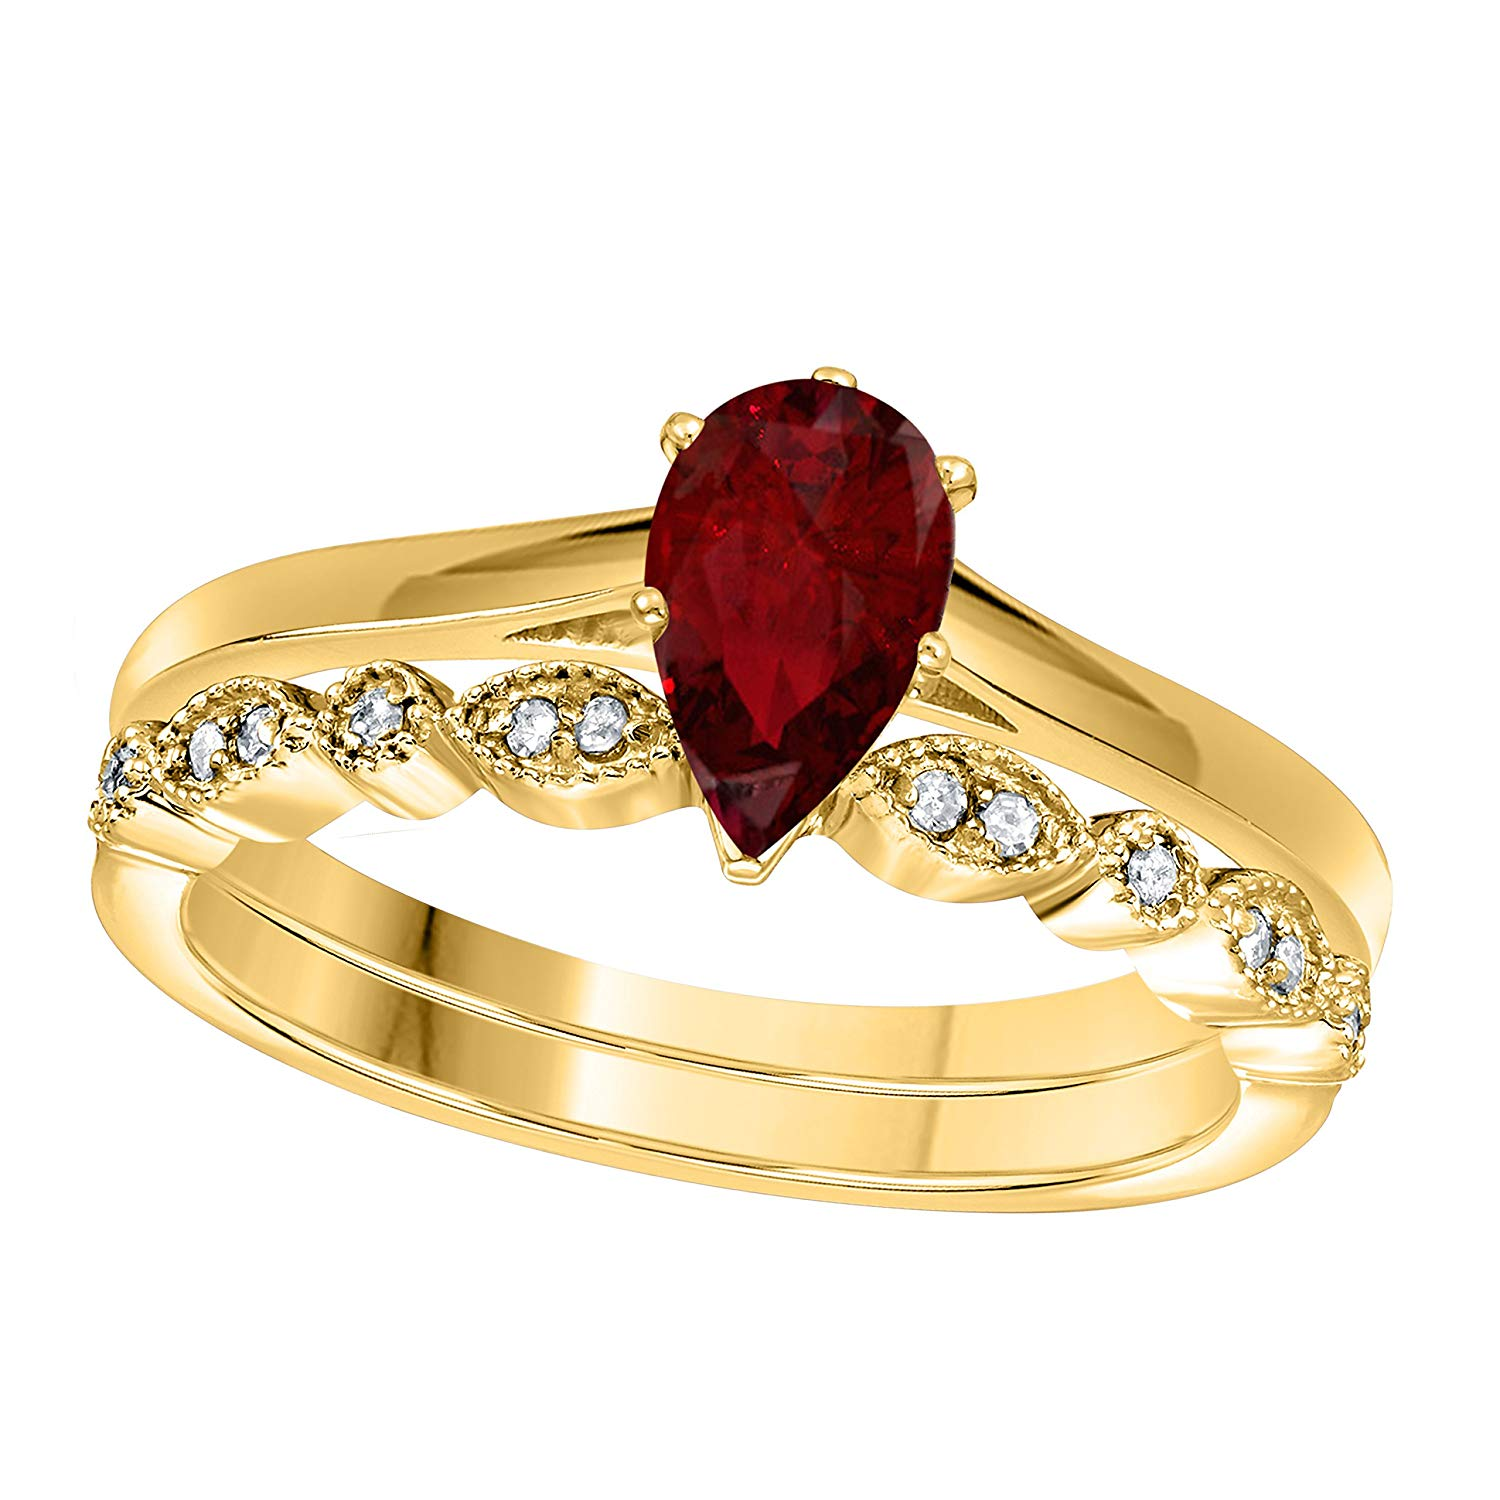 DreamJewels 1.00 Ct Pear Shape & Round Cut Red Ruby & White CZ Diamond 14k Yellow Gold Finish Alloy Art Deco Vintage Design Wedding Engagement Ring Sets Size 4.5-12